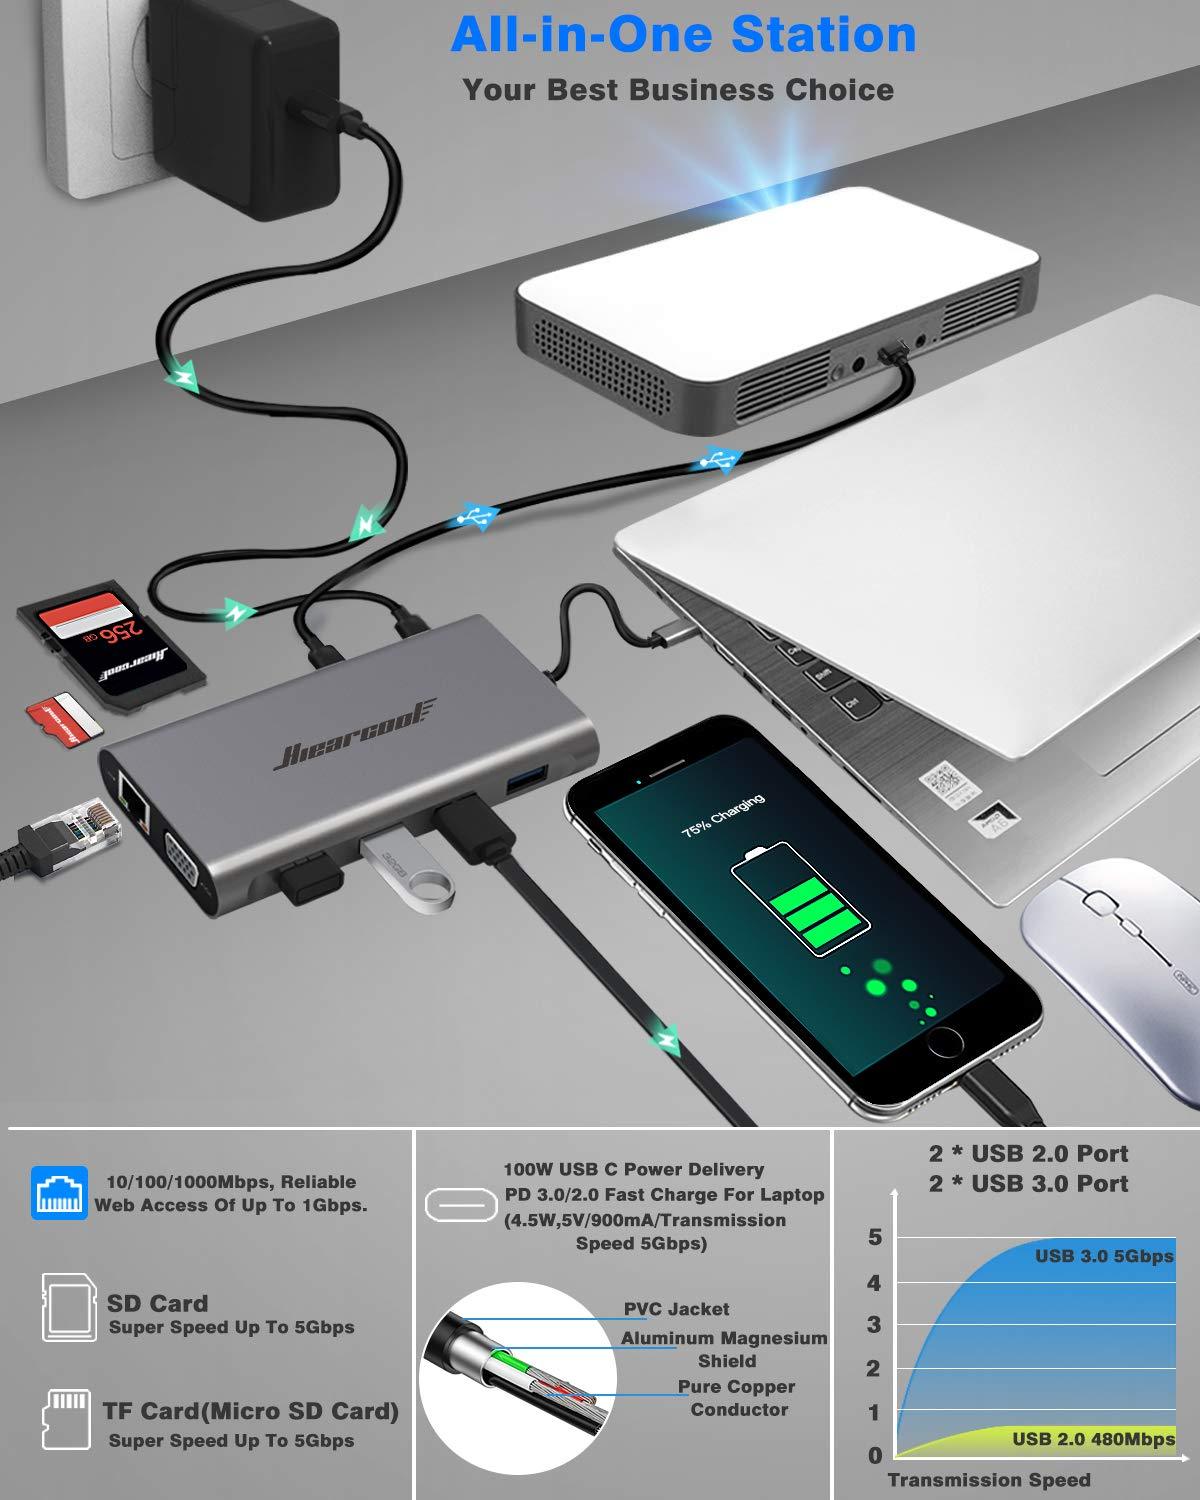 Hiearcool USB C Hub,USB-C Laptop Docking Station,11 in 1 Triple Display Type C Adapter Compatiable for MacBook and Windows(2HDMI VGA PD3.0 SD TF Card Reader Gigabit Ethernet 4USB Ports) by Hiearcool (Image #5)